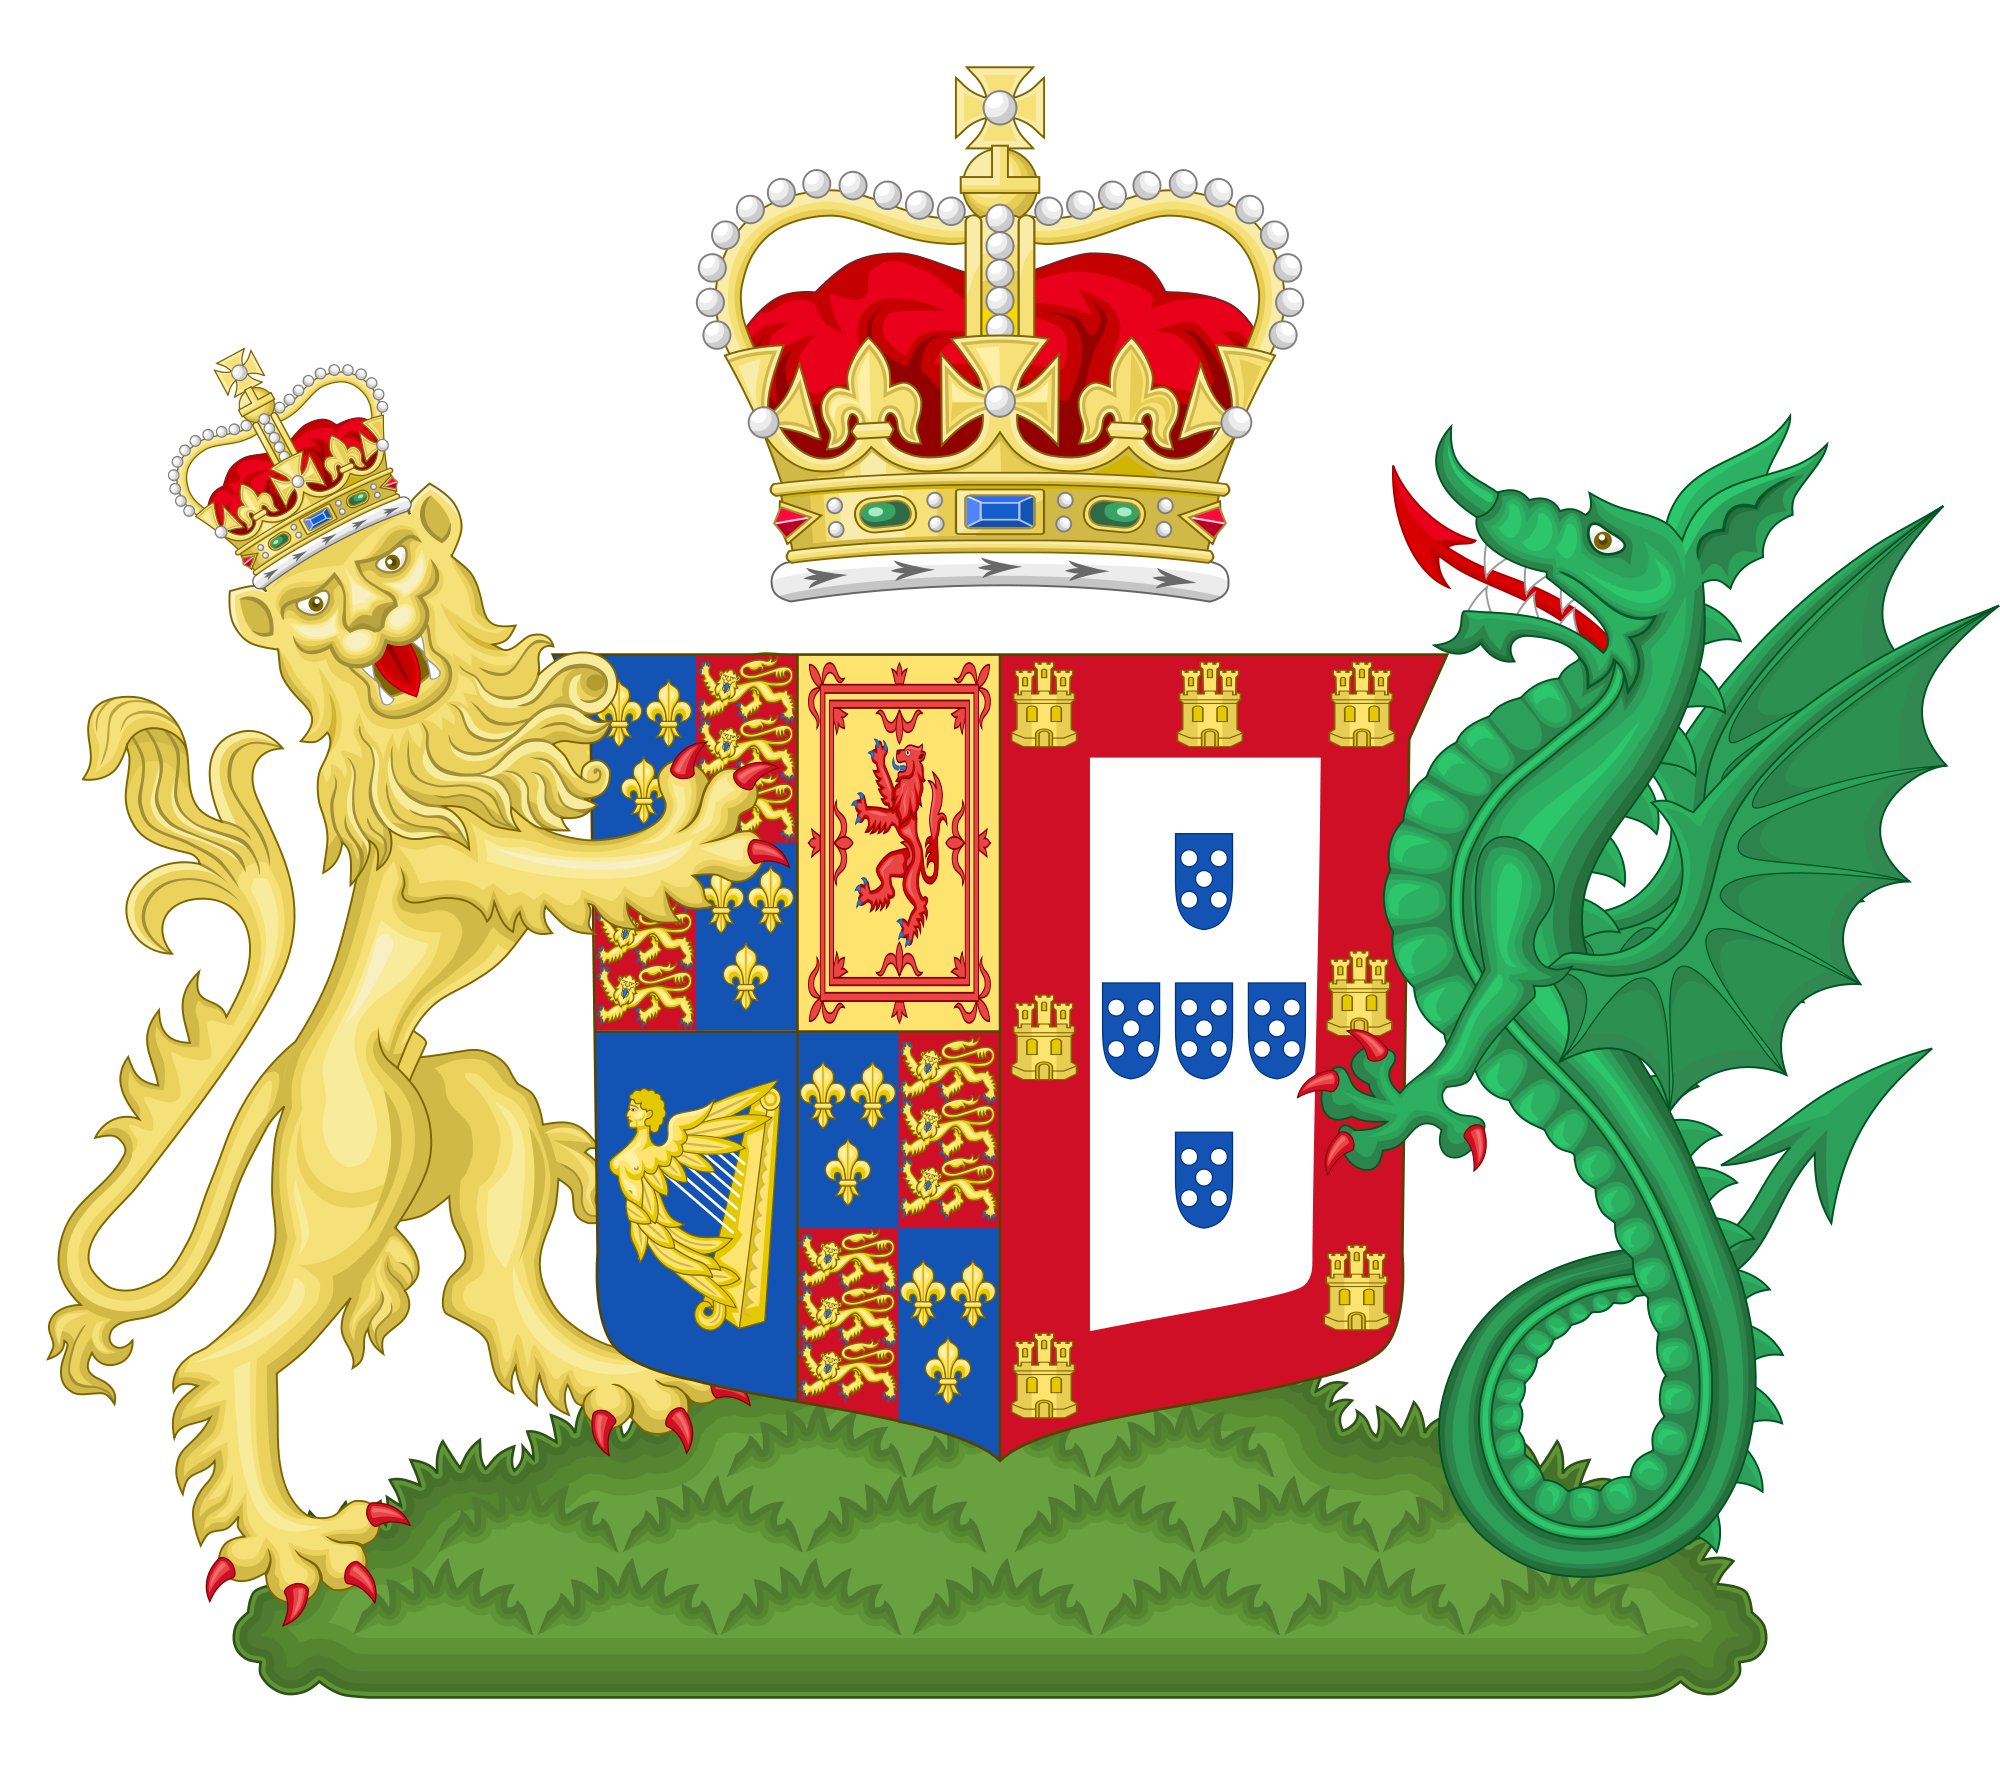 File:Coat of Arms of Catherine of Braganza.svg.